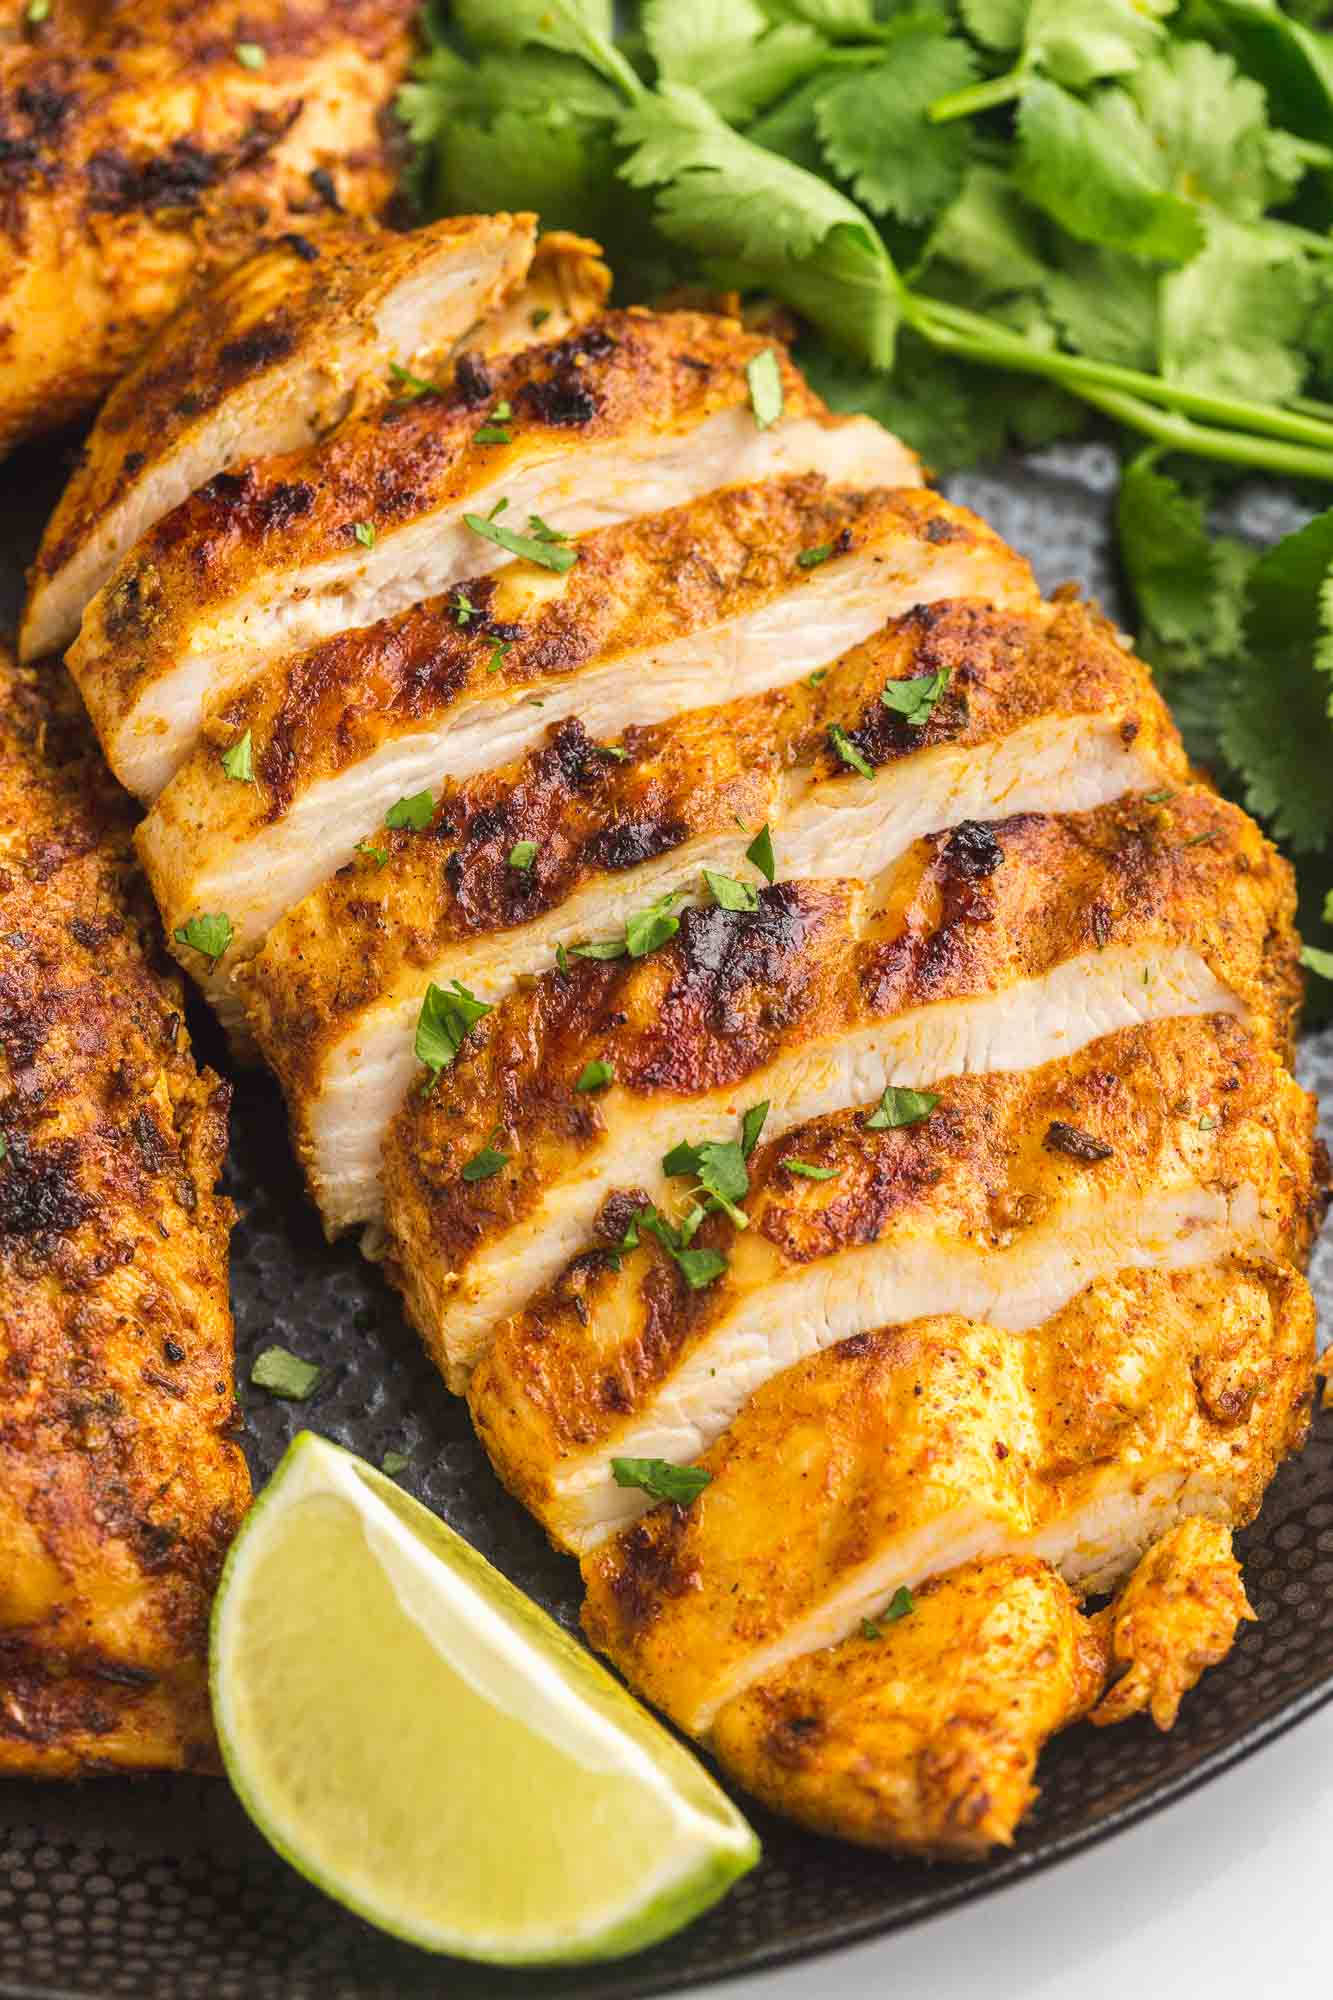 Grilled and sliced chicken breast served on a black plate with fresh lime wedge and fresh cilantro leaves